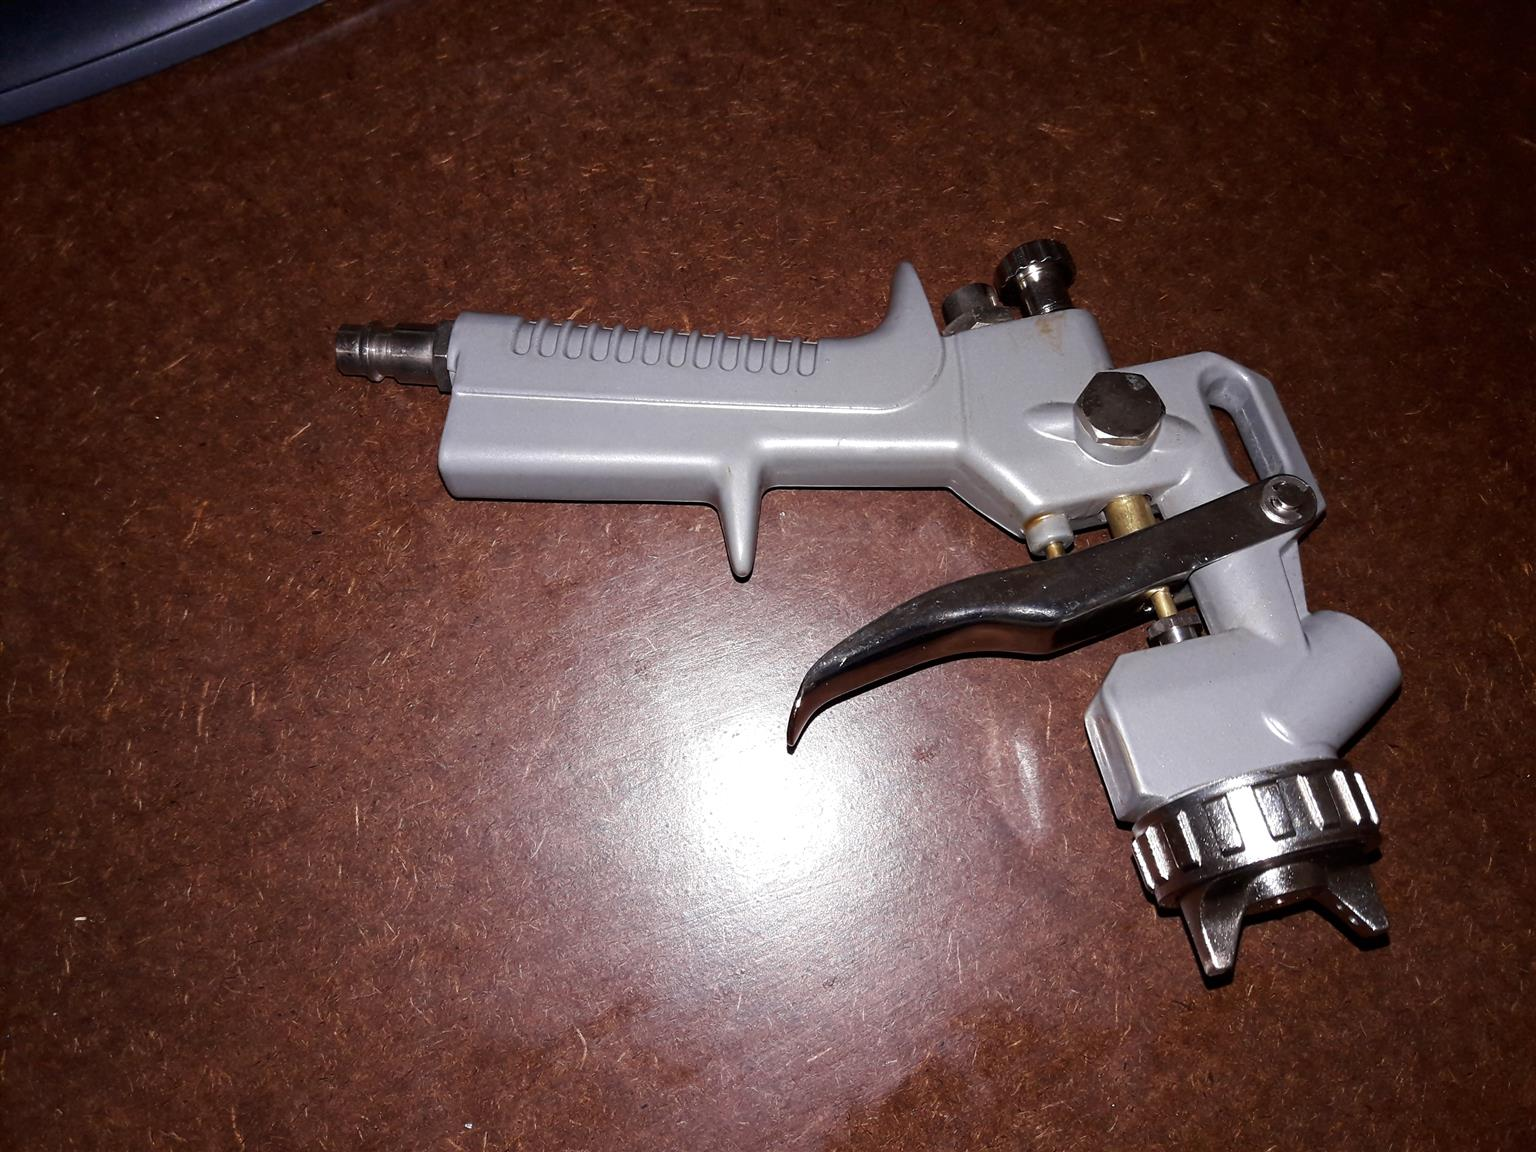 Spray gun with gravity feed